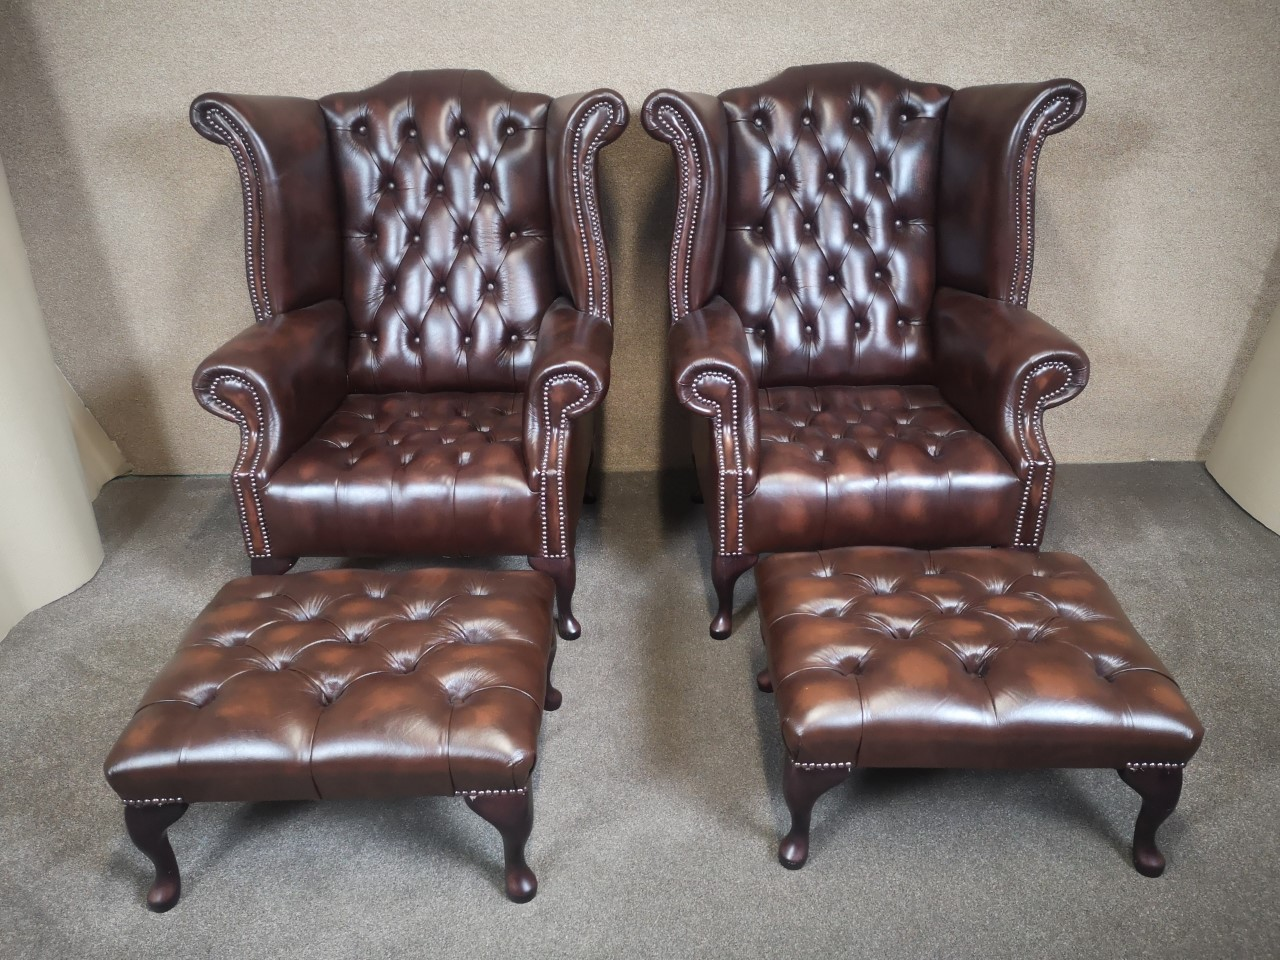 Pair of brown leather chairs with matching stools(chairs)画像